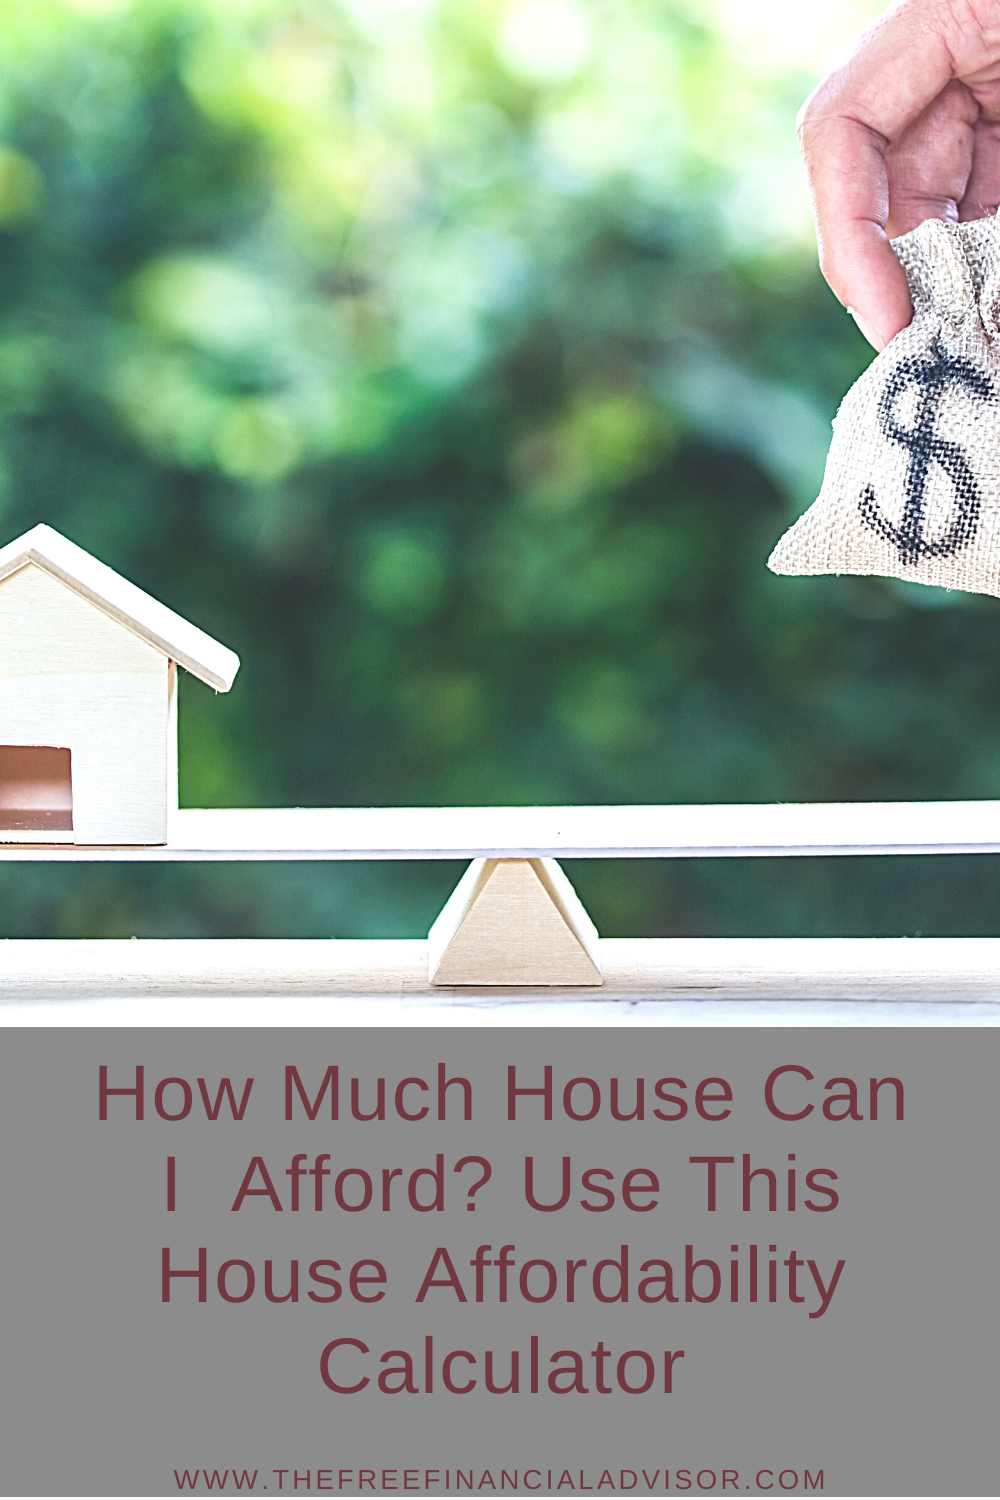 How Much House Can I Afford Use This House Affordability Calculator